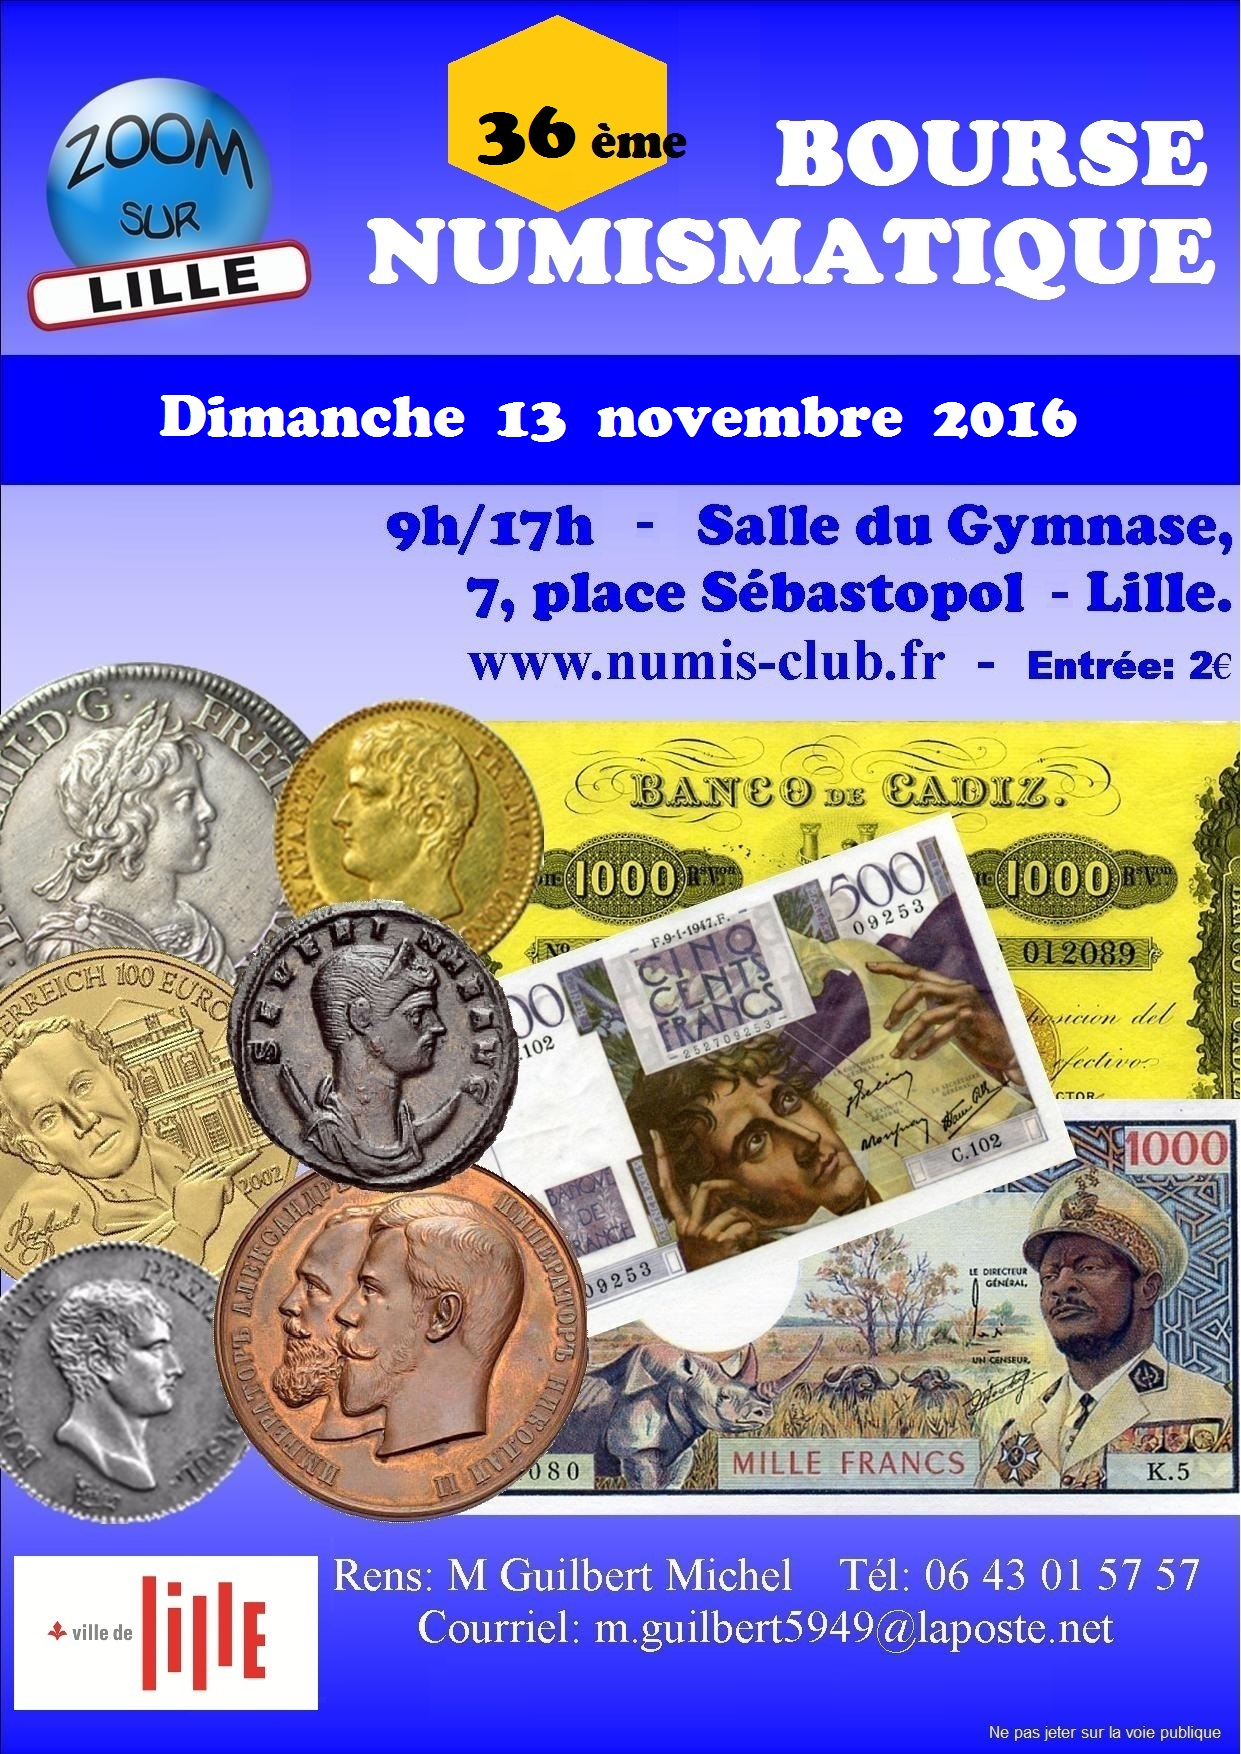 36e Bourse numismatique - Lille - 13/11/16